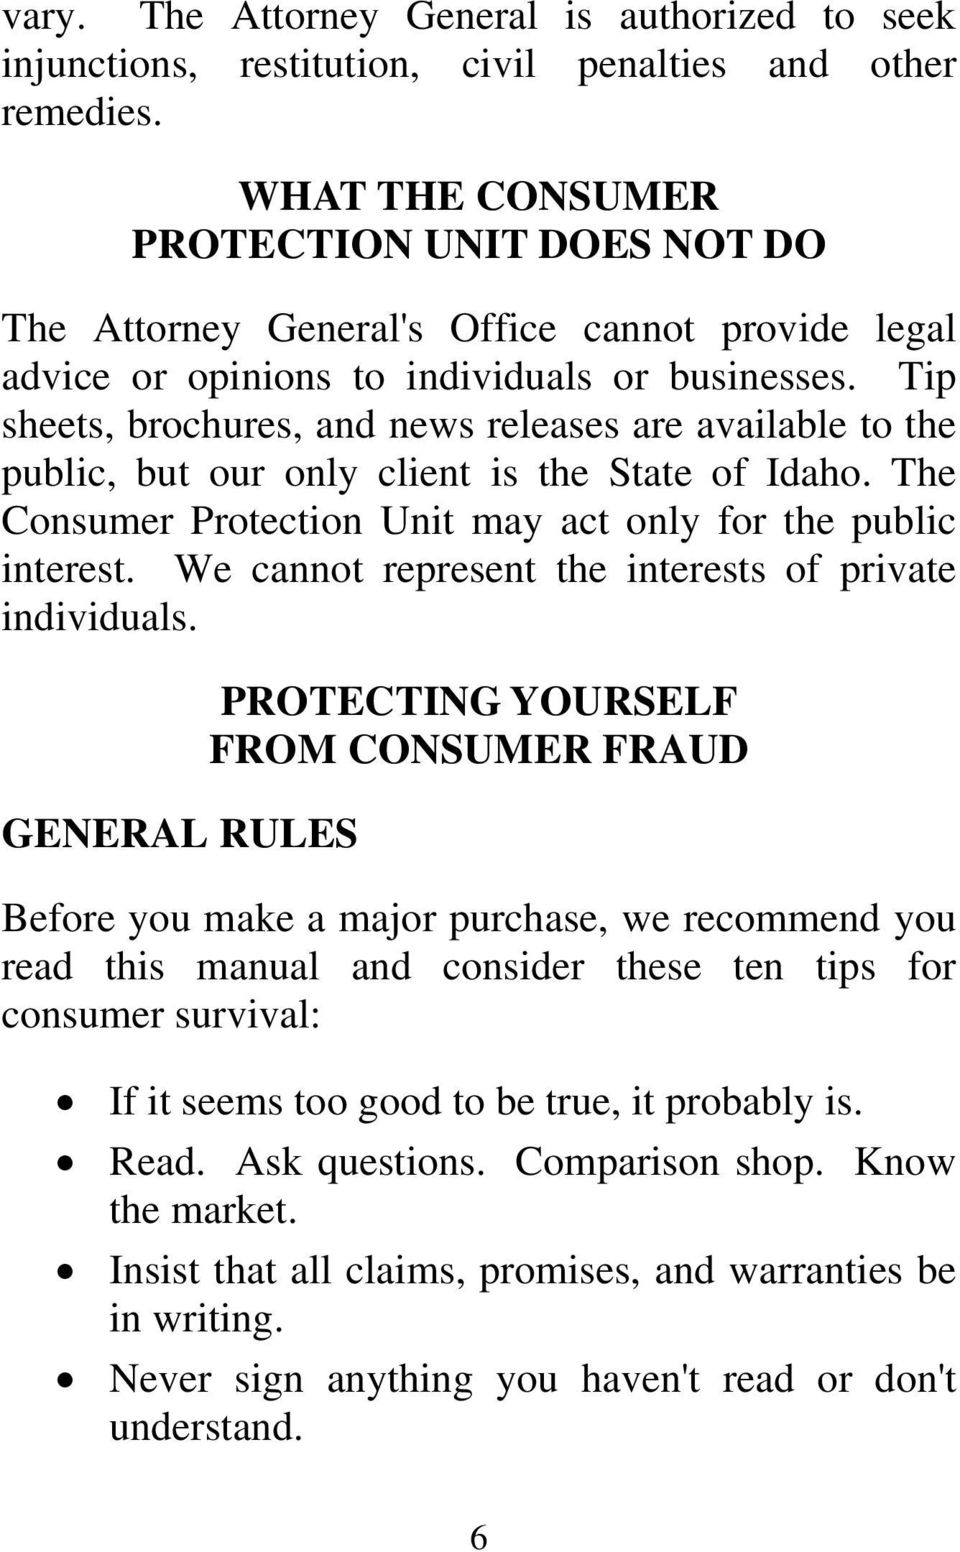 Tip sheets, brochures, and news releases are available to the public, but our only client is the State of Idaho. The Consumer Protection Unit may act only for the public interest.